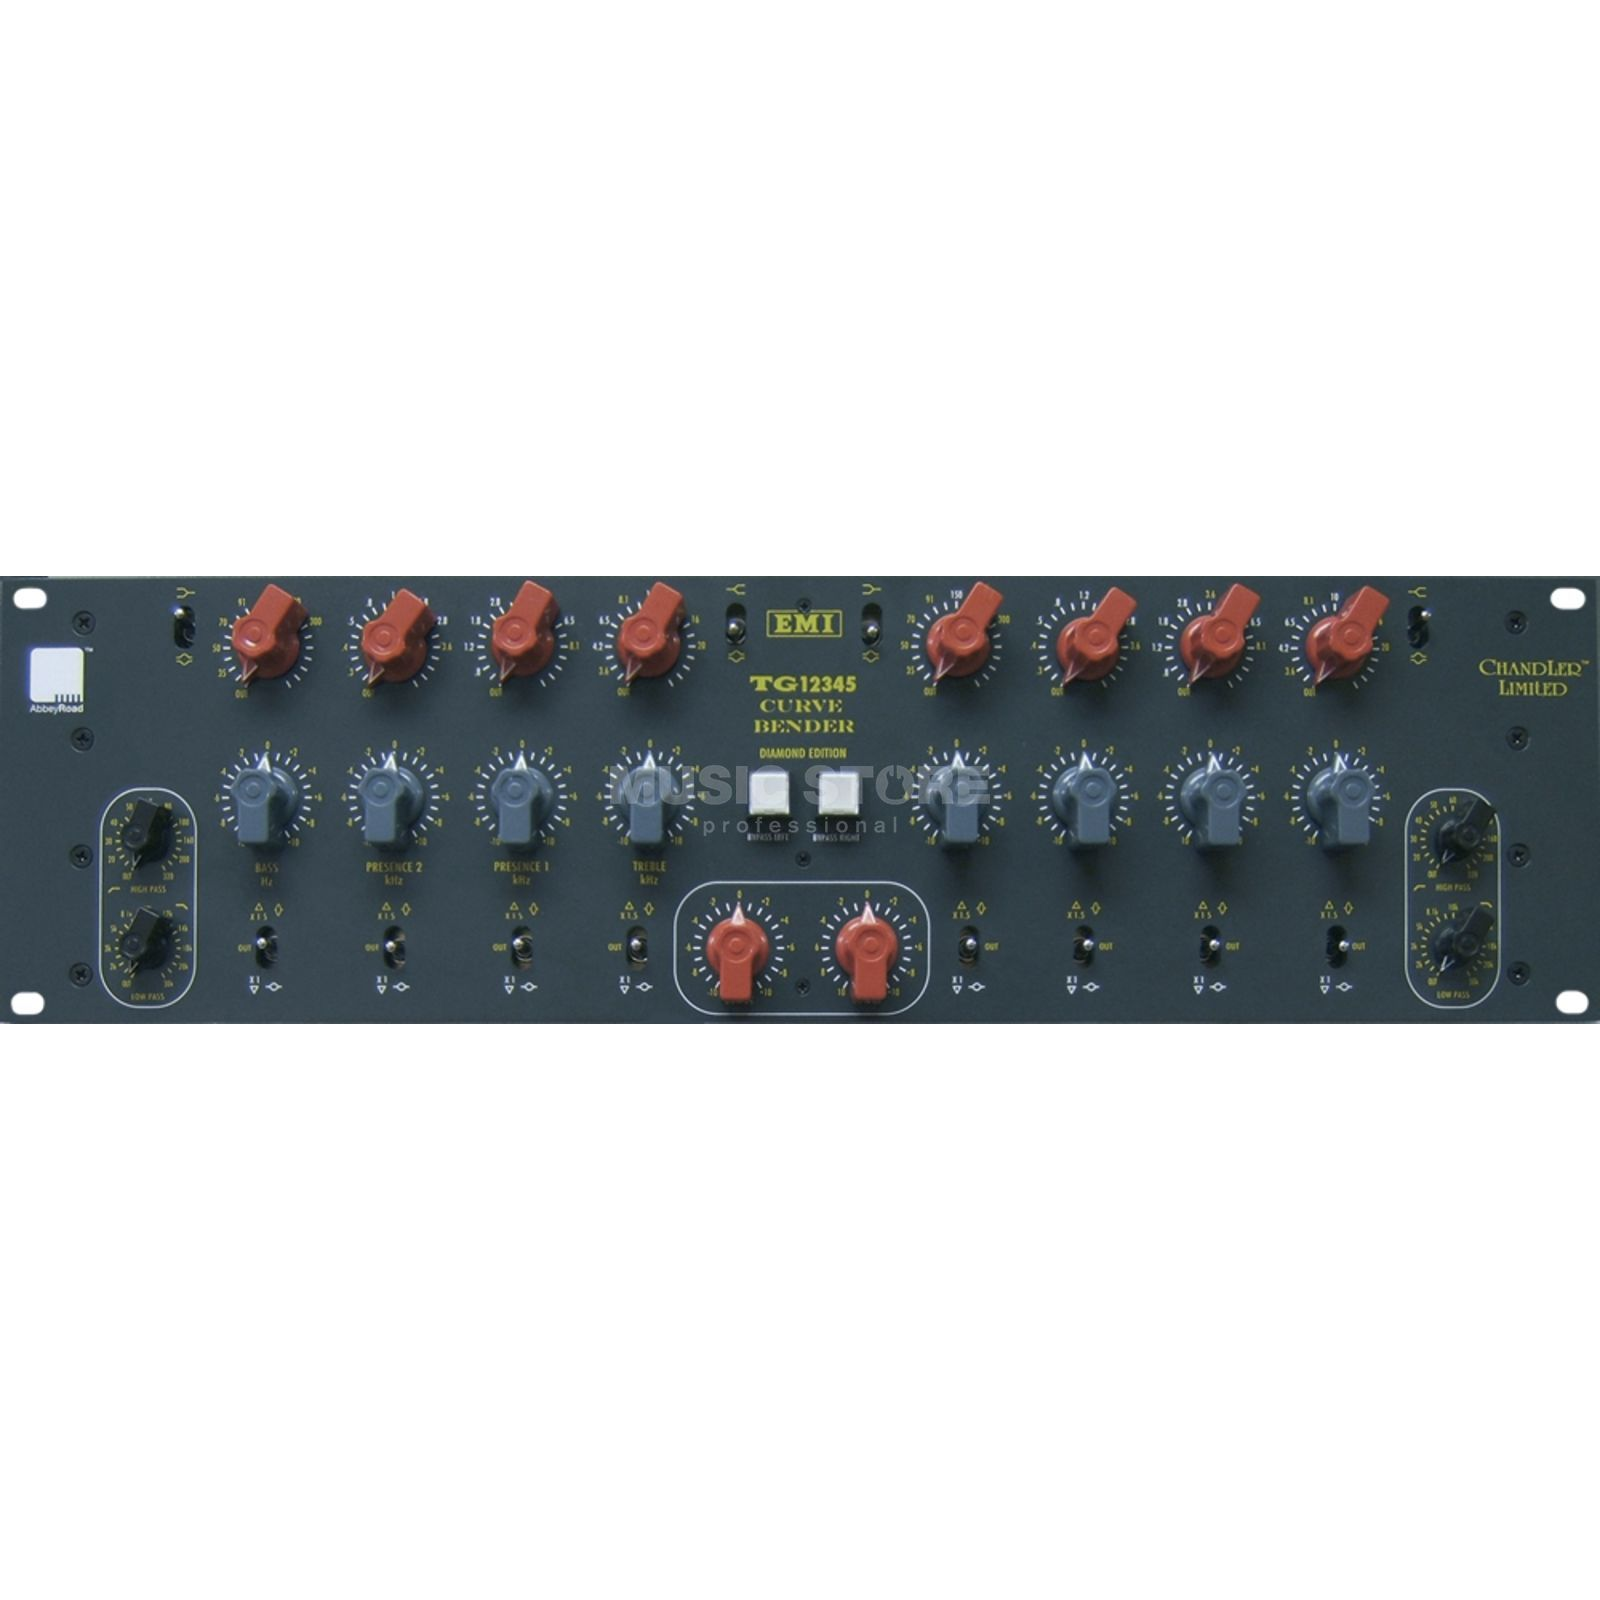 Chandler Limited TG 12345 Curve Bender Stereo/Dual Mono Equalizer Product Image